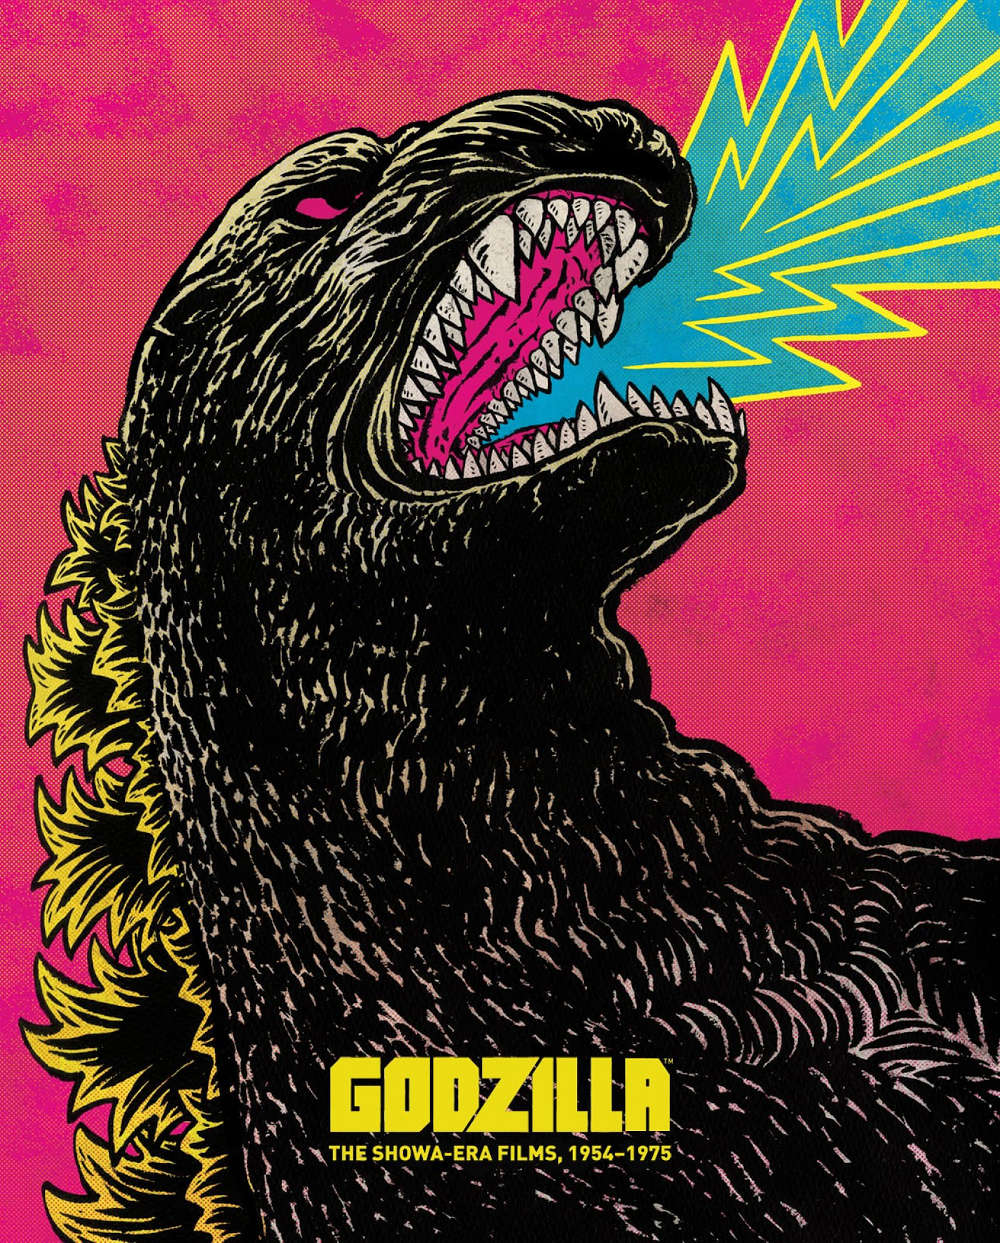 Godzilla: The Showa Era Films box set